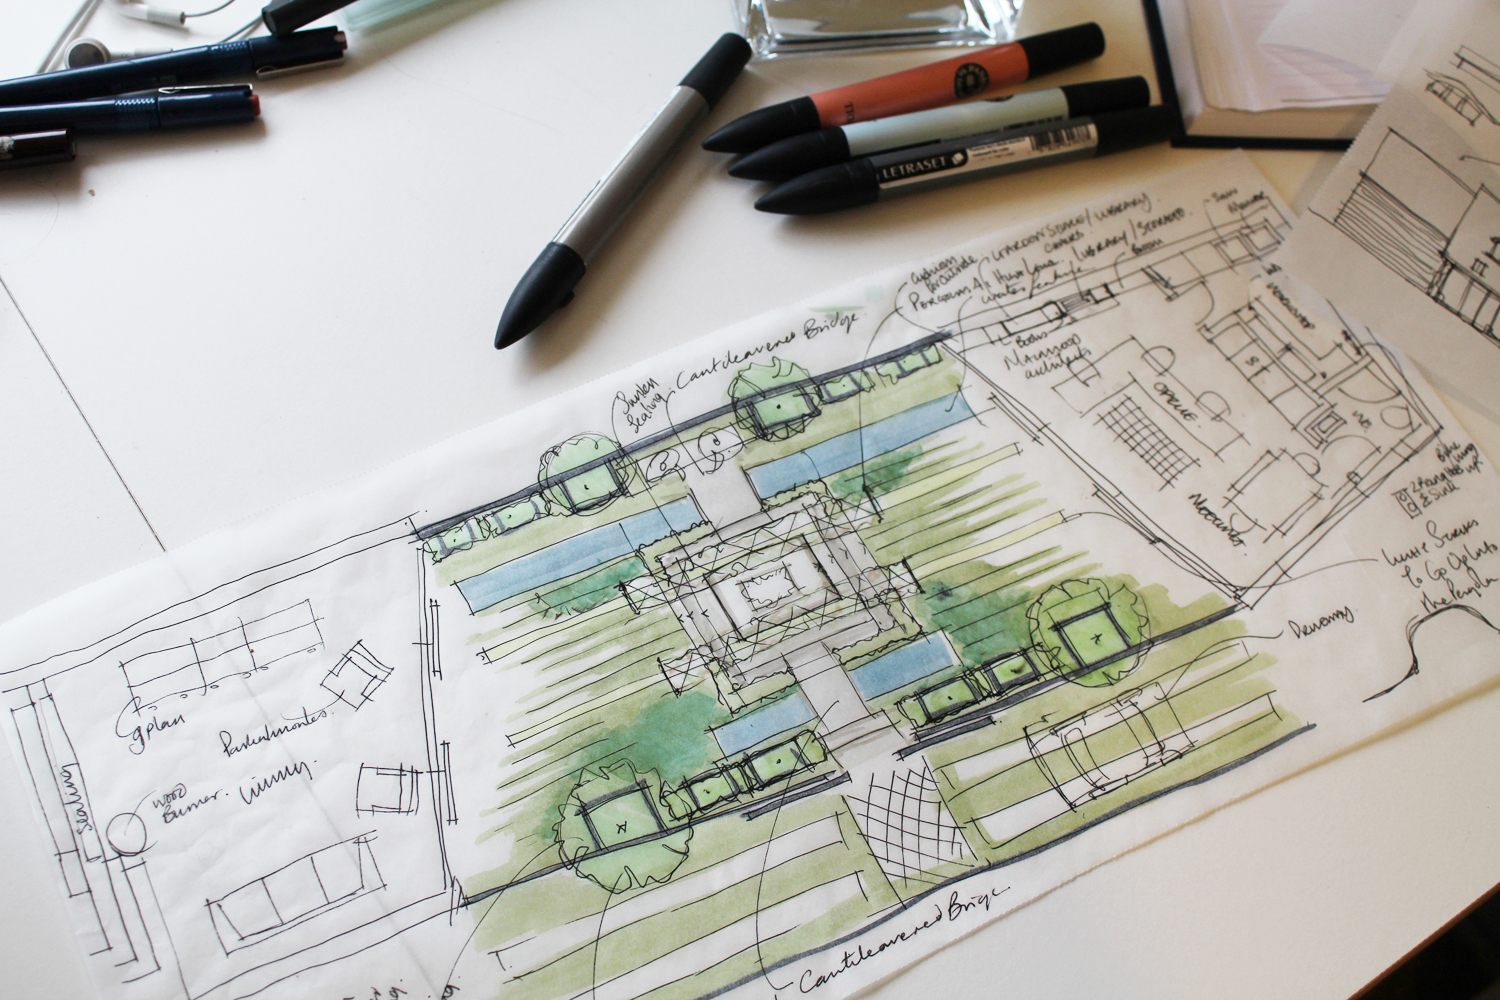 plan garden design with proposed house alterations